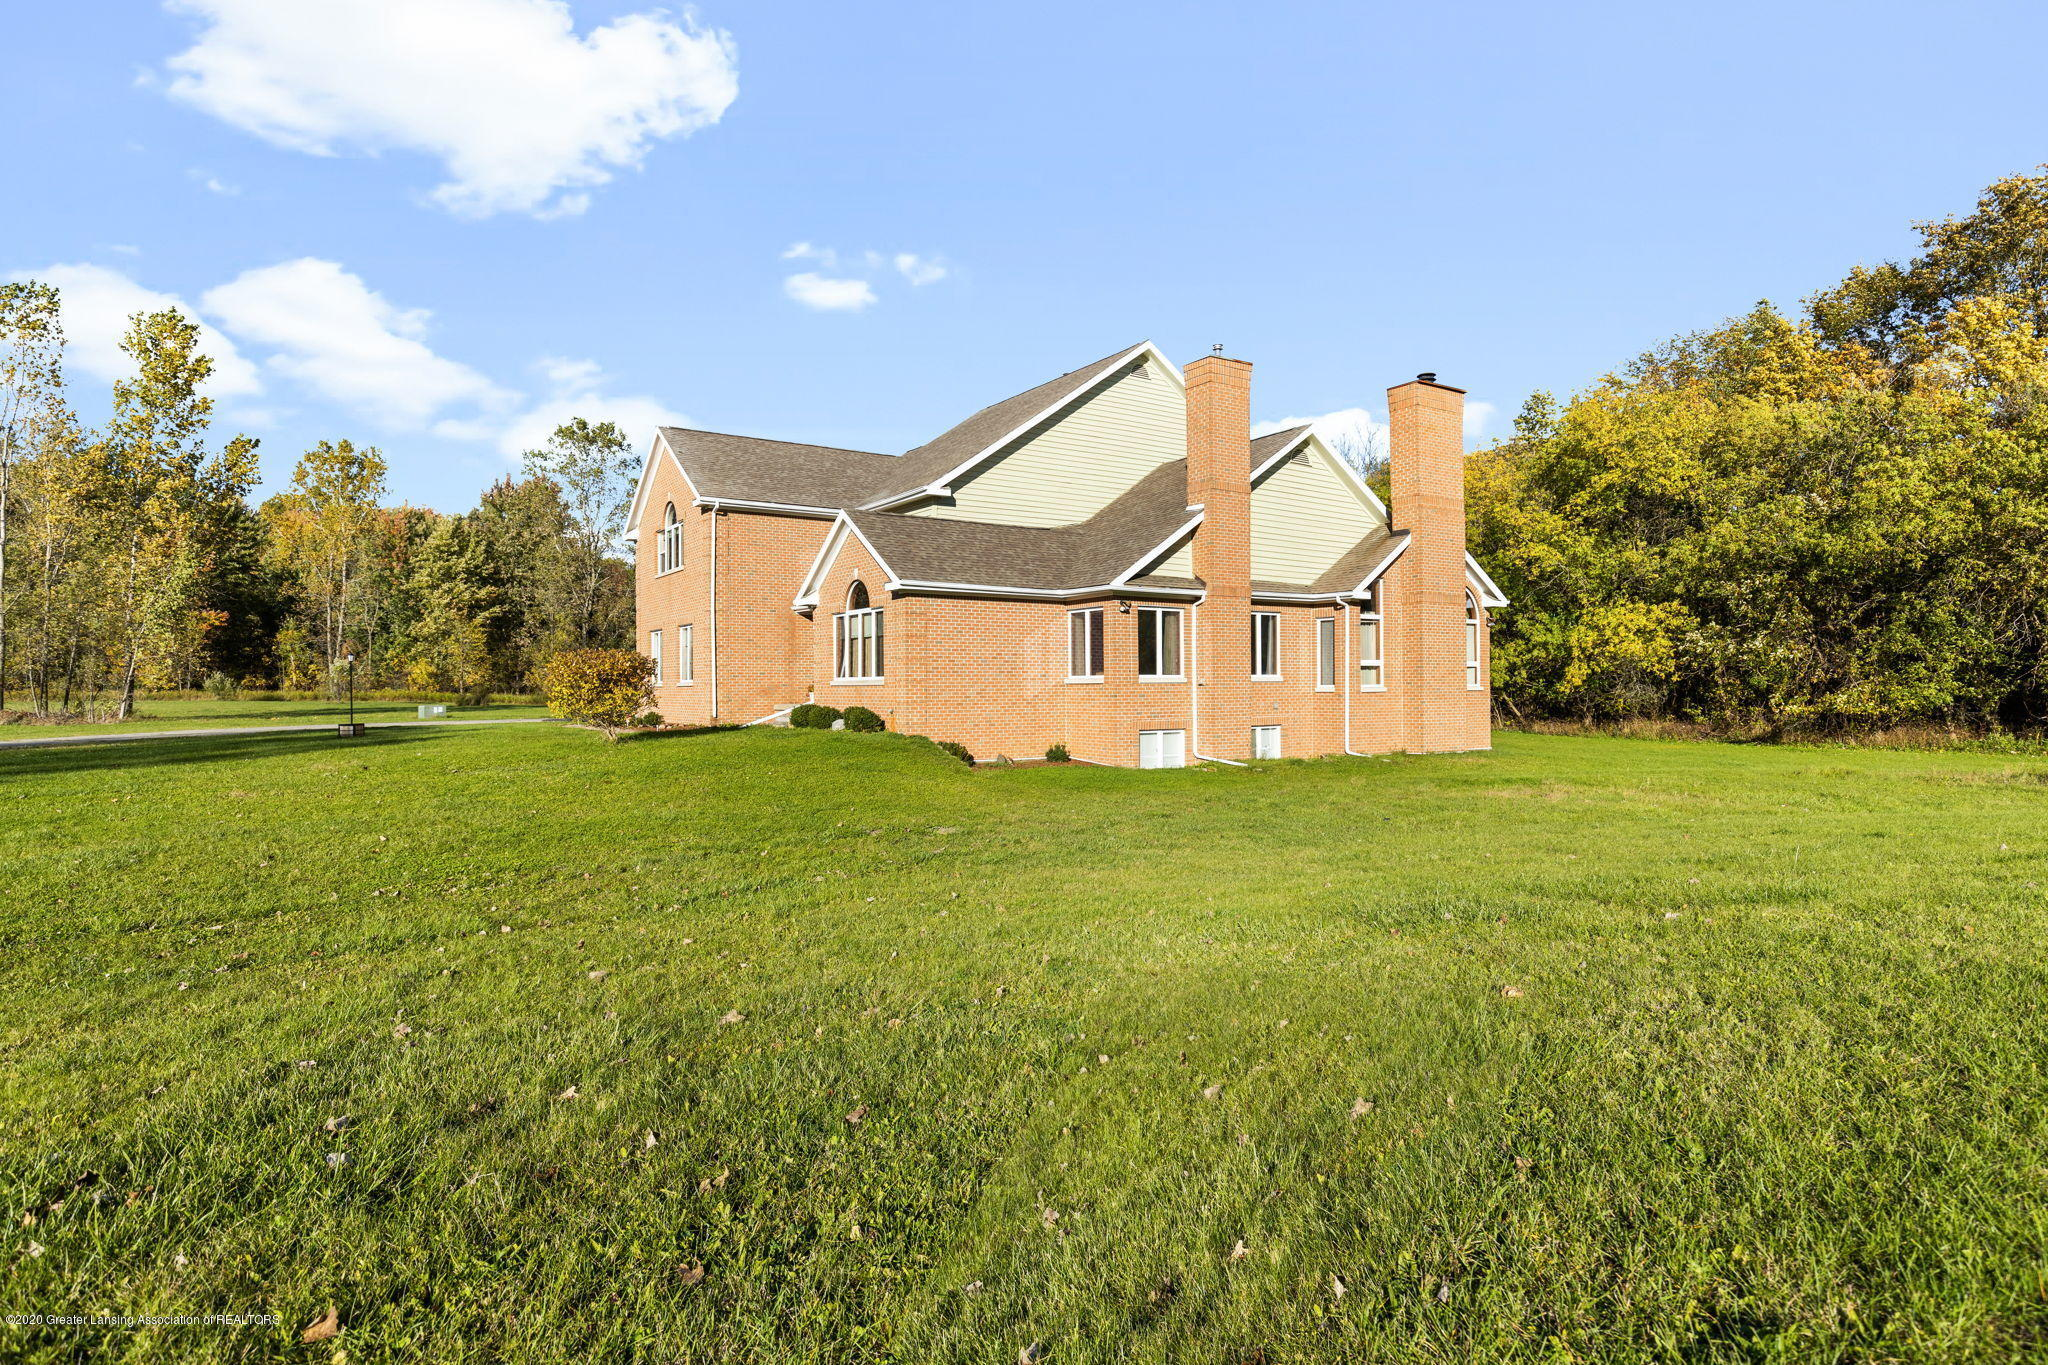 300 Jolly Rd - 23-web-or-mls-1P6A8588 - 23